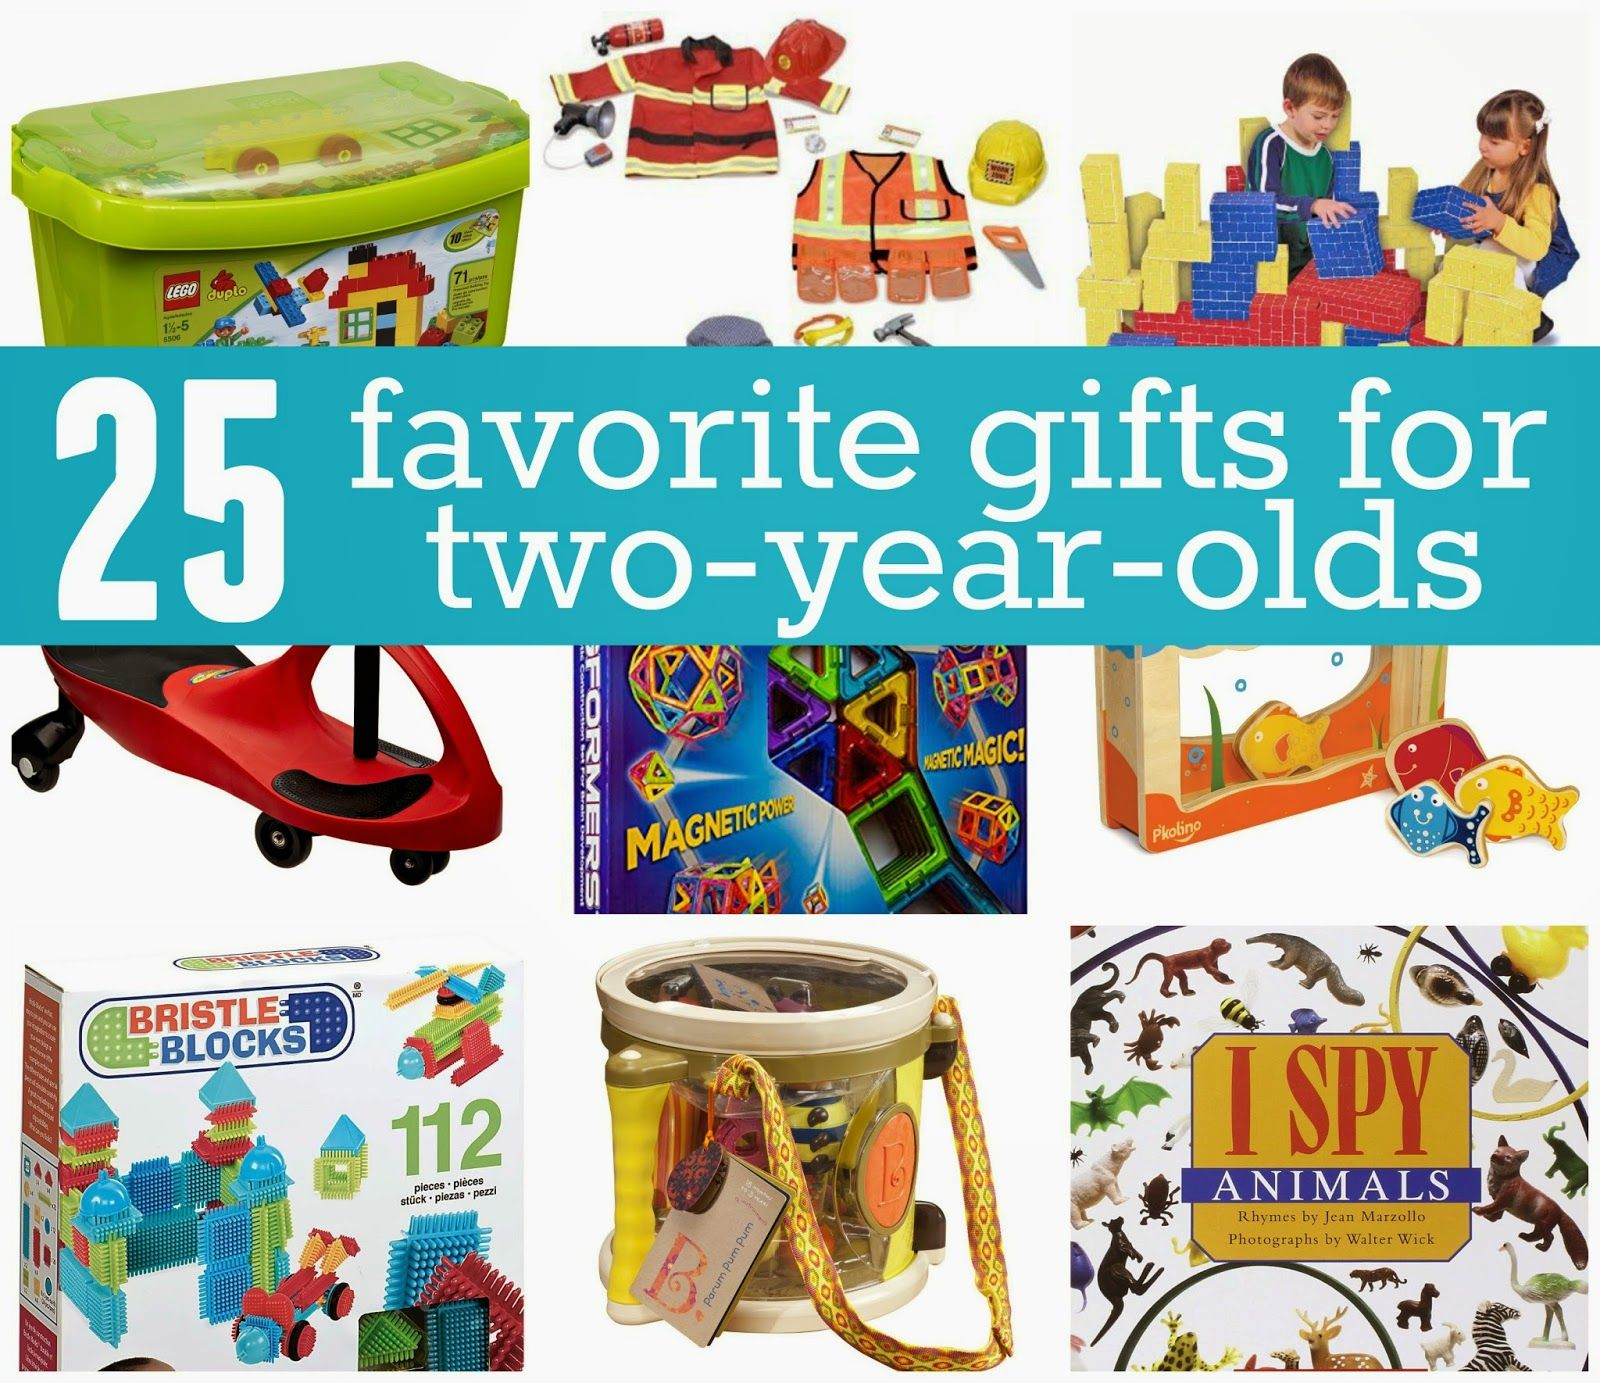 Favorite Gifts For 2 Year Olds Gender Gift And Babies